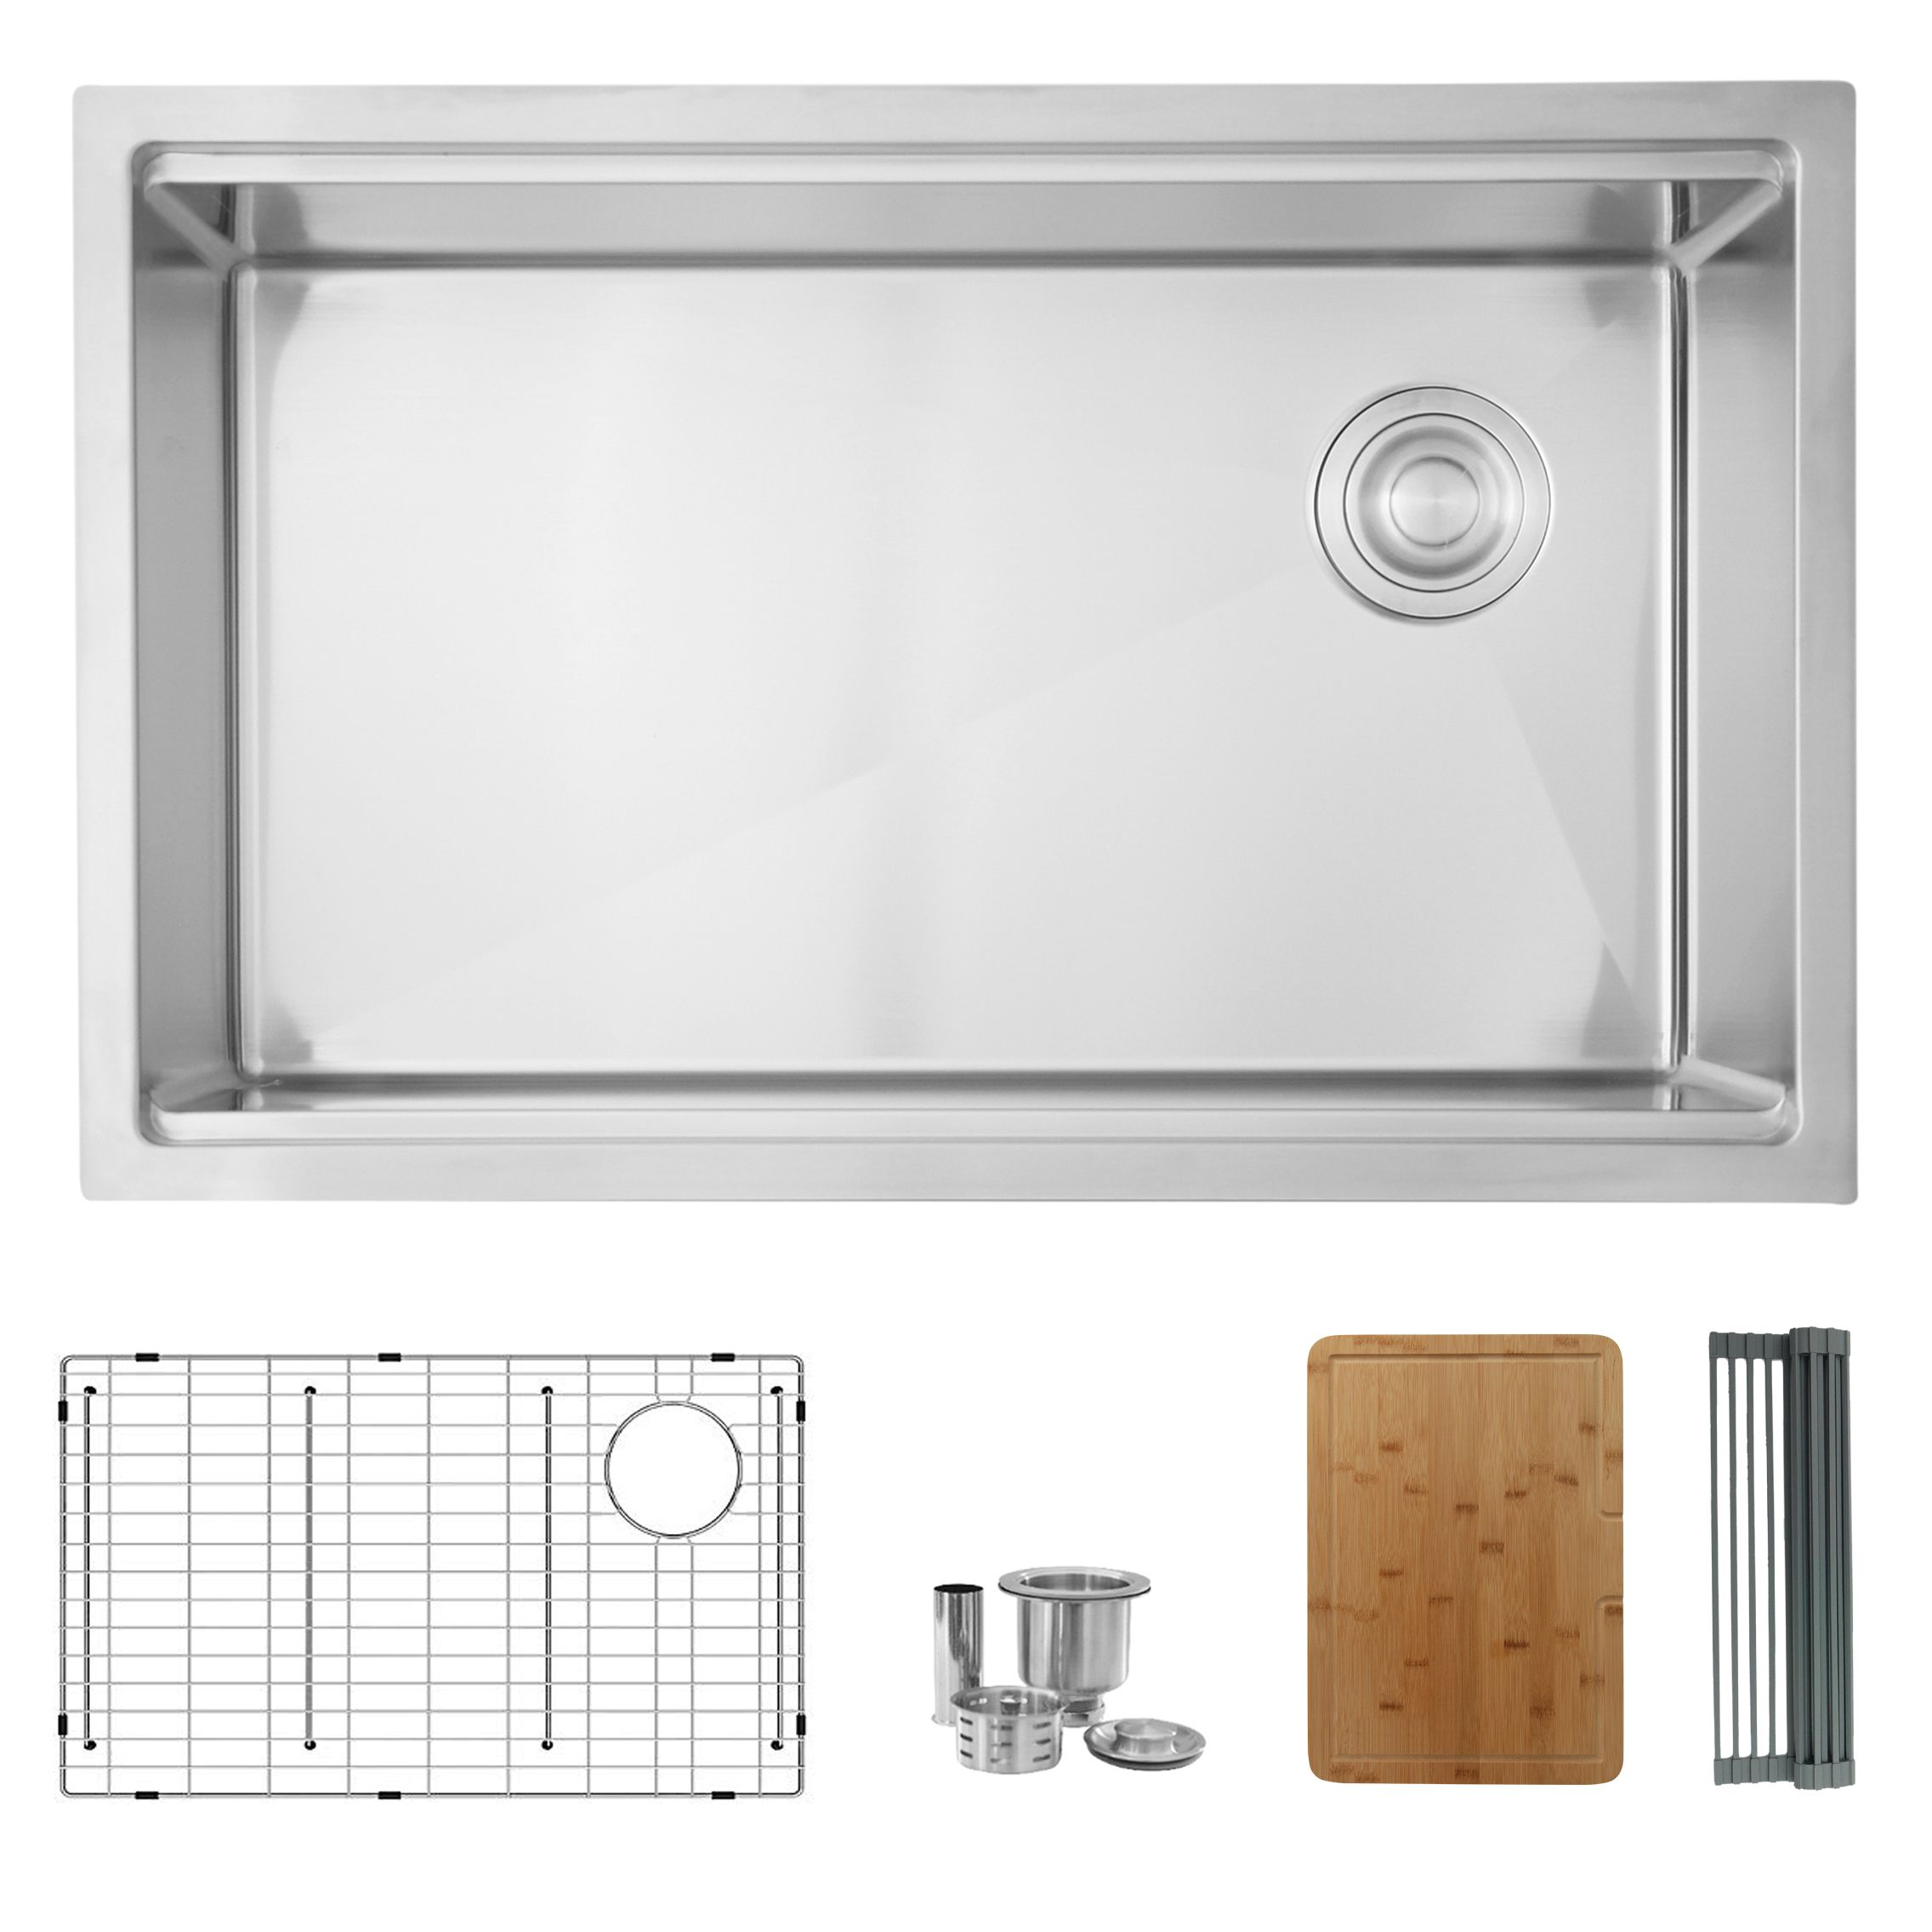 BLUIC - C131L Stainless Steel Sink